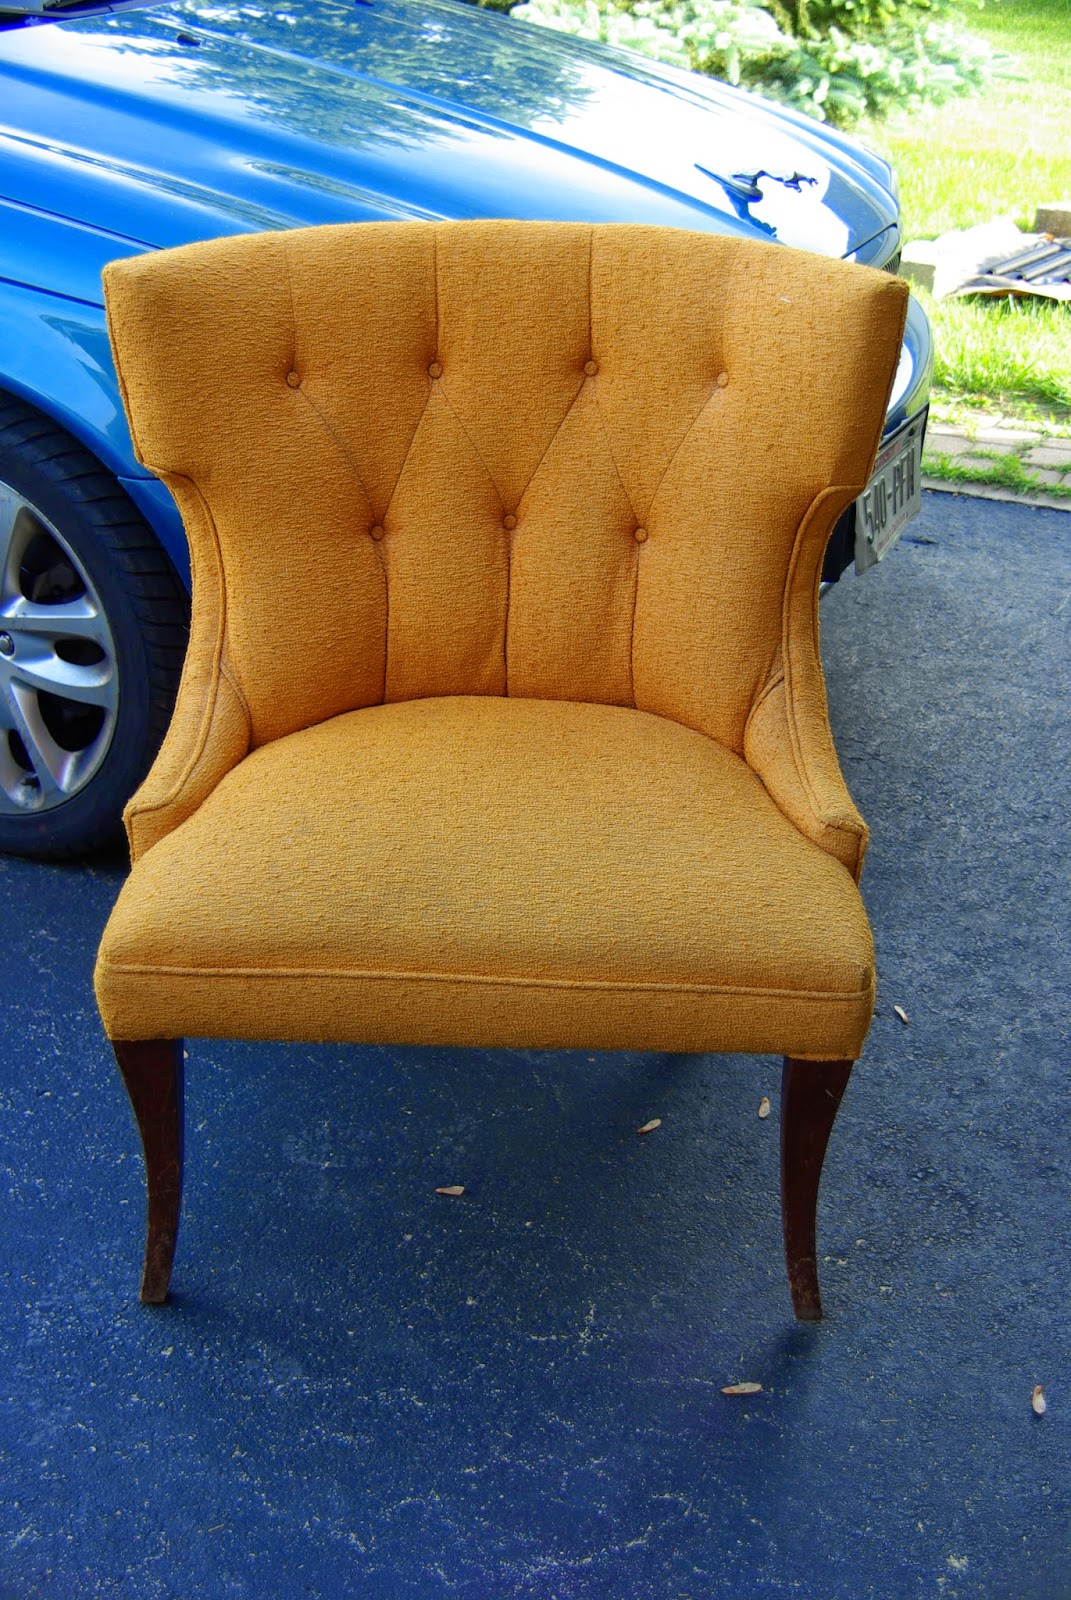 new project, reupholstering chairs